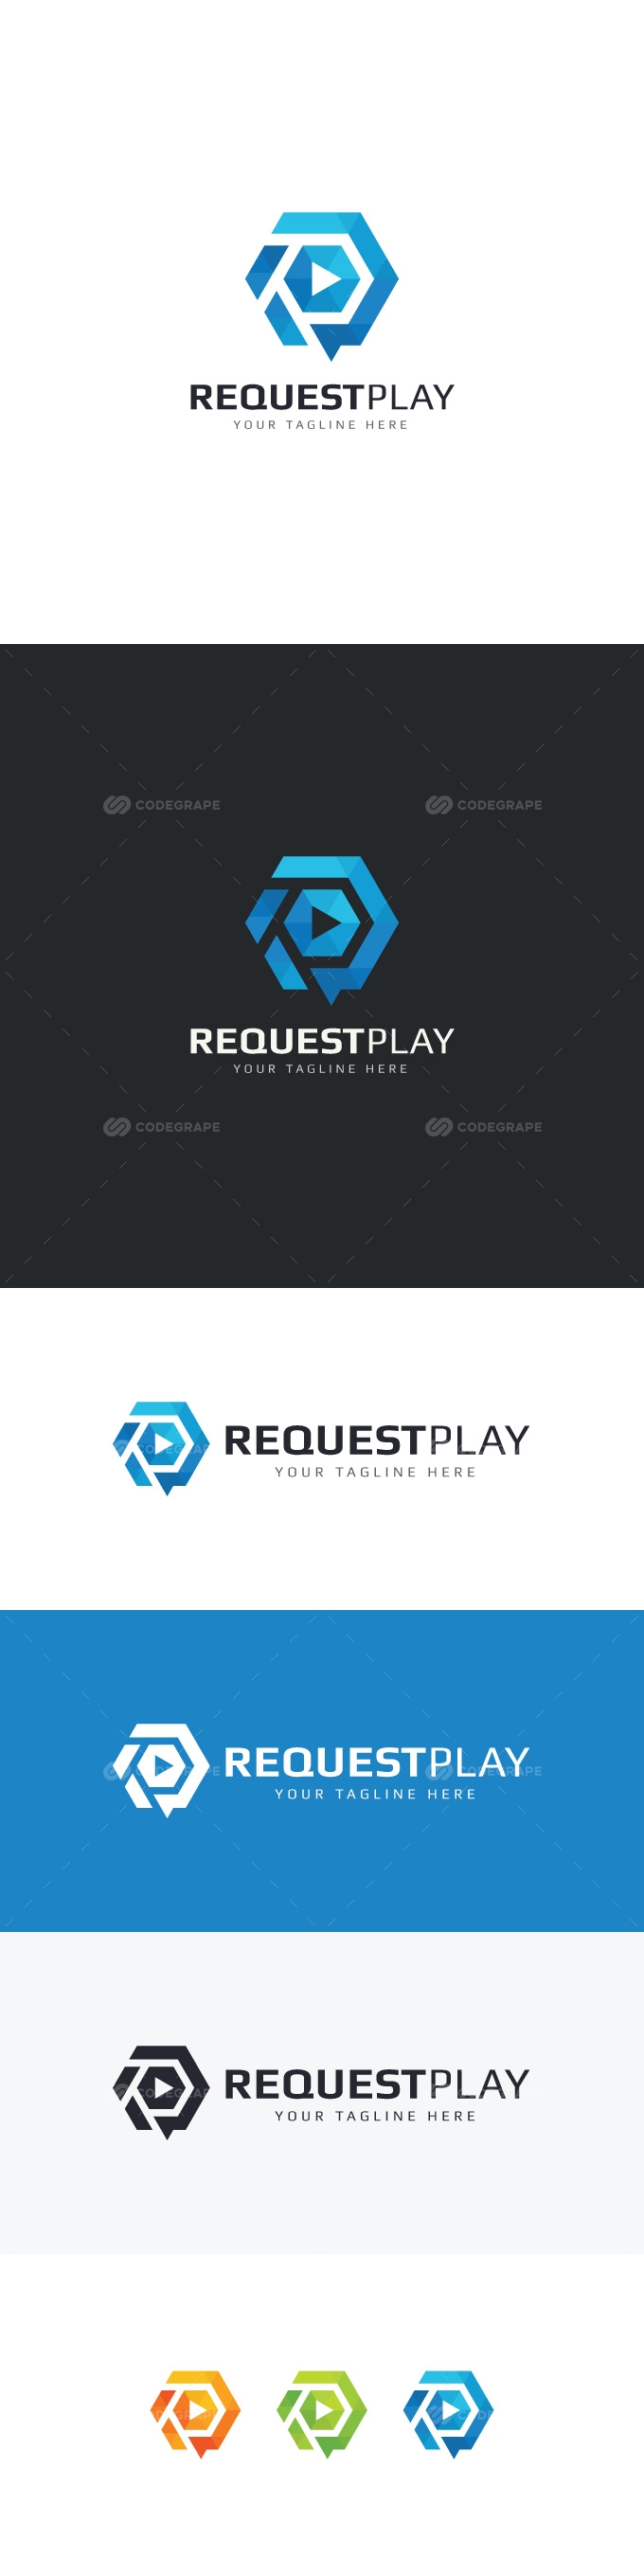 Request Play Logo